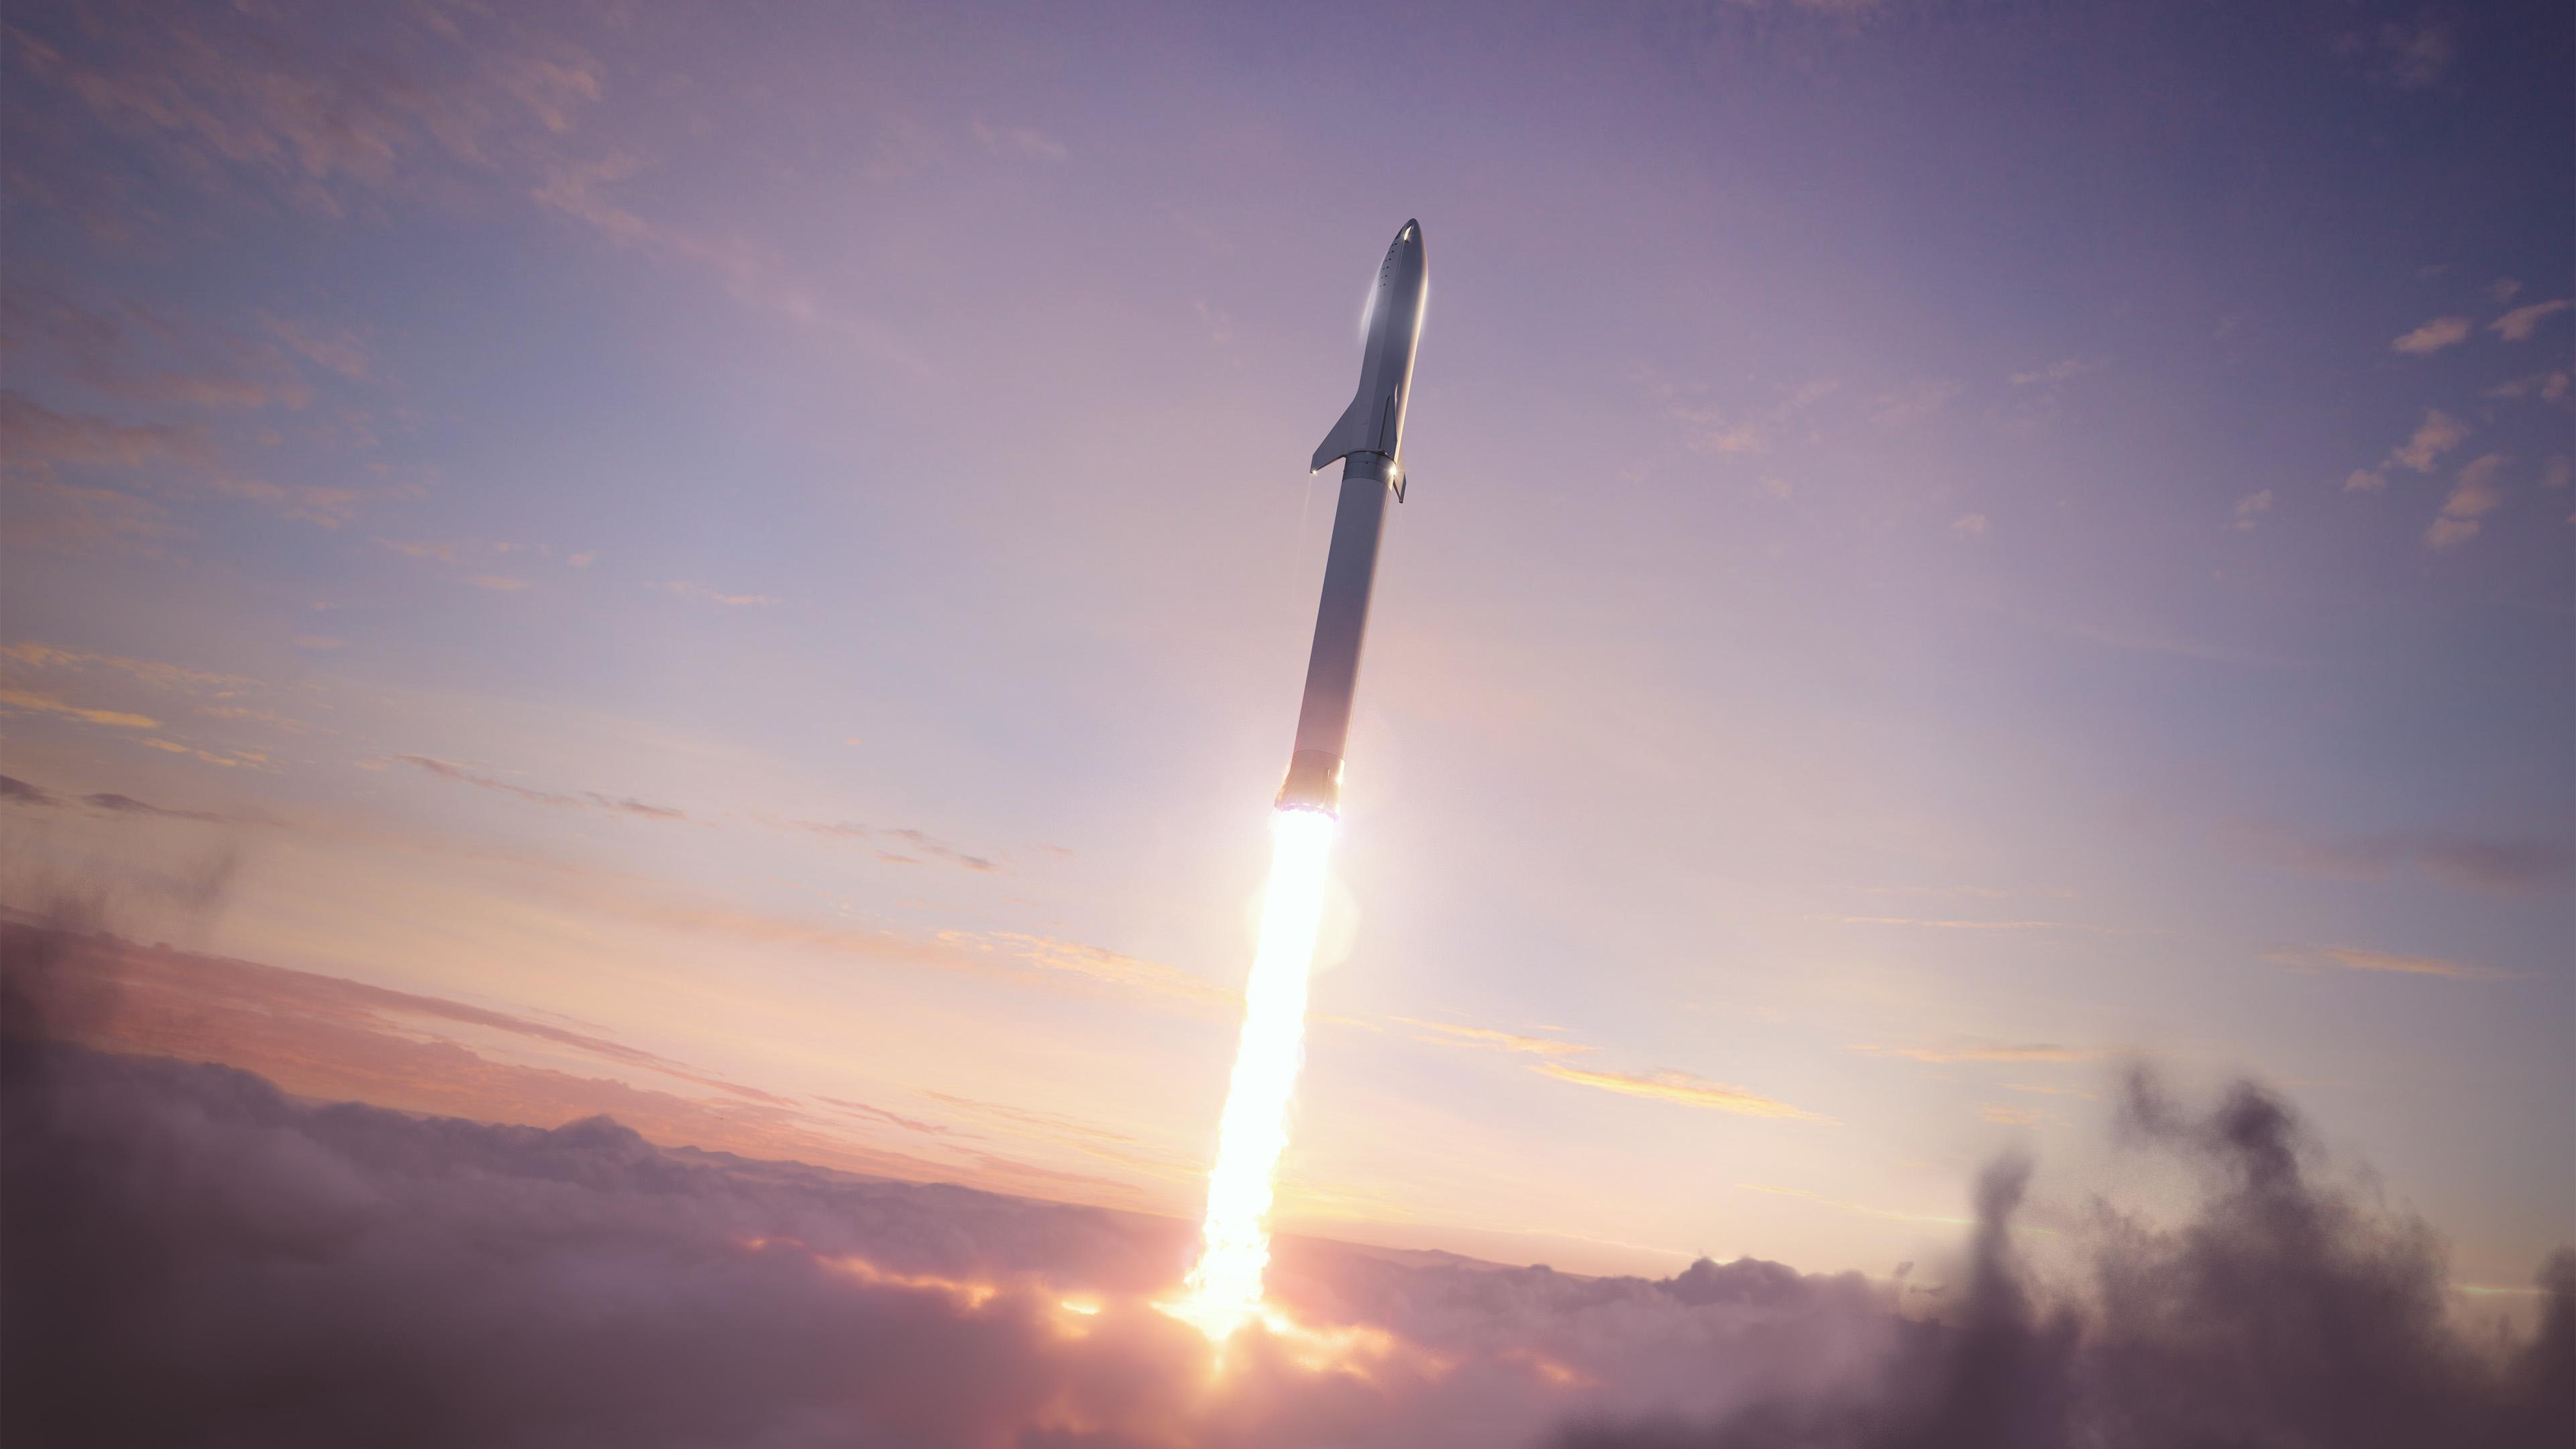 BFR 2018 launch (SpaceX) 2 n(c)